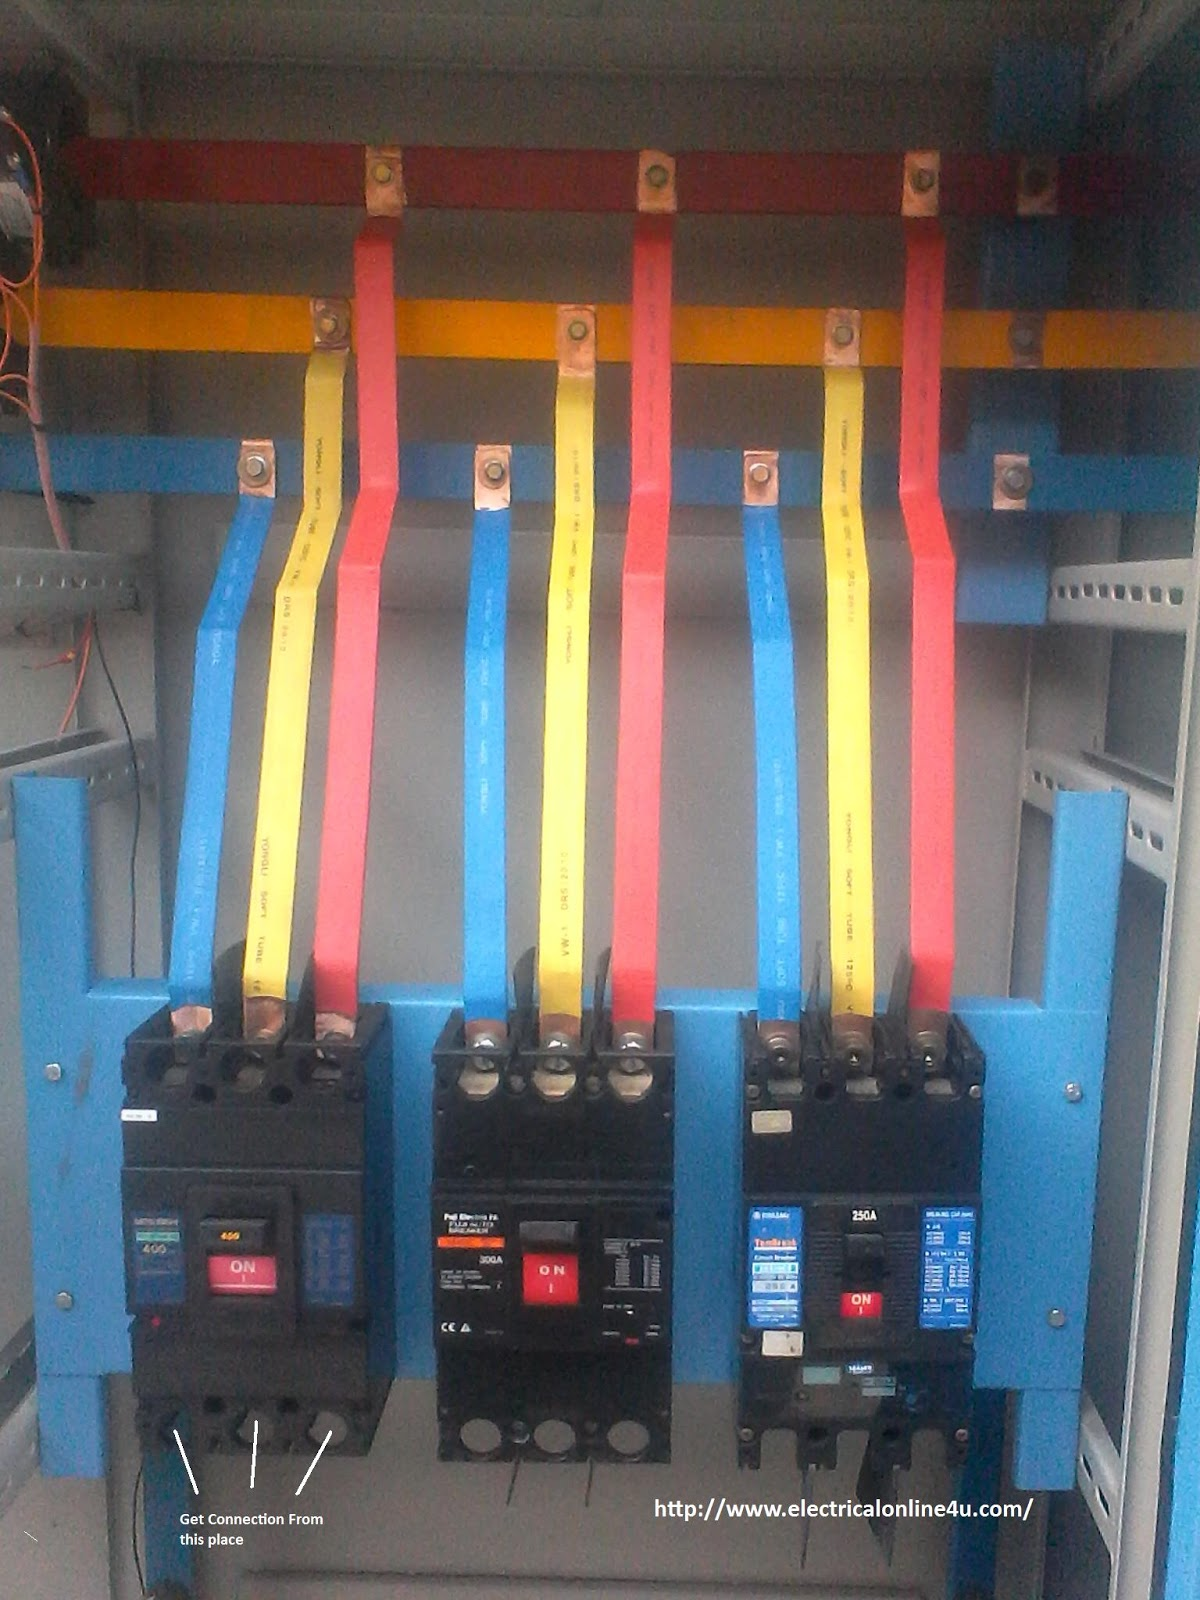 Circuit%2BBreaker%2BInstallation%2BFor%2BThree%2BPhase%2BSupply circuit breaker installation for three phase supply 3 phase schneider mccb motorized wiring diagram at nearapp.co